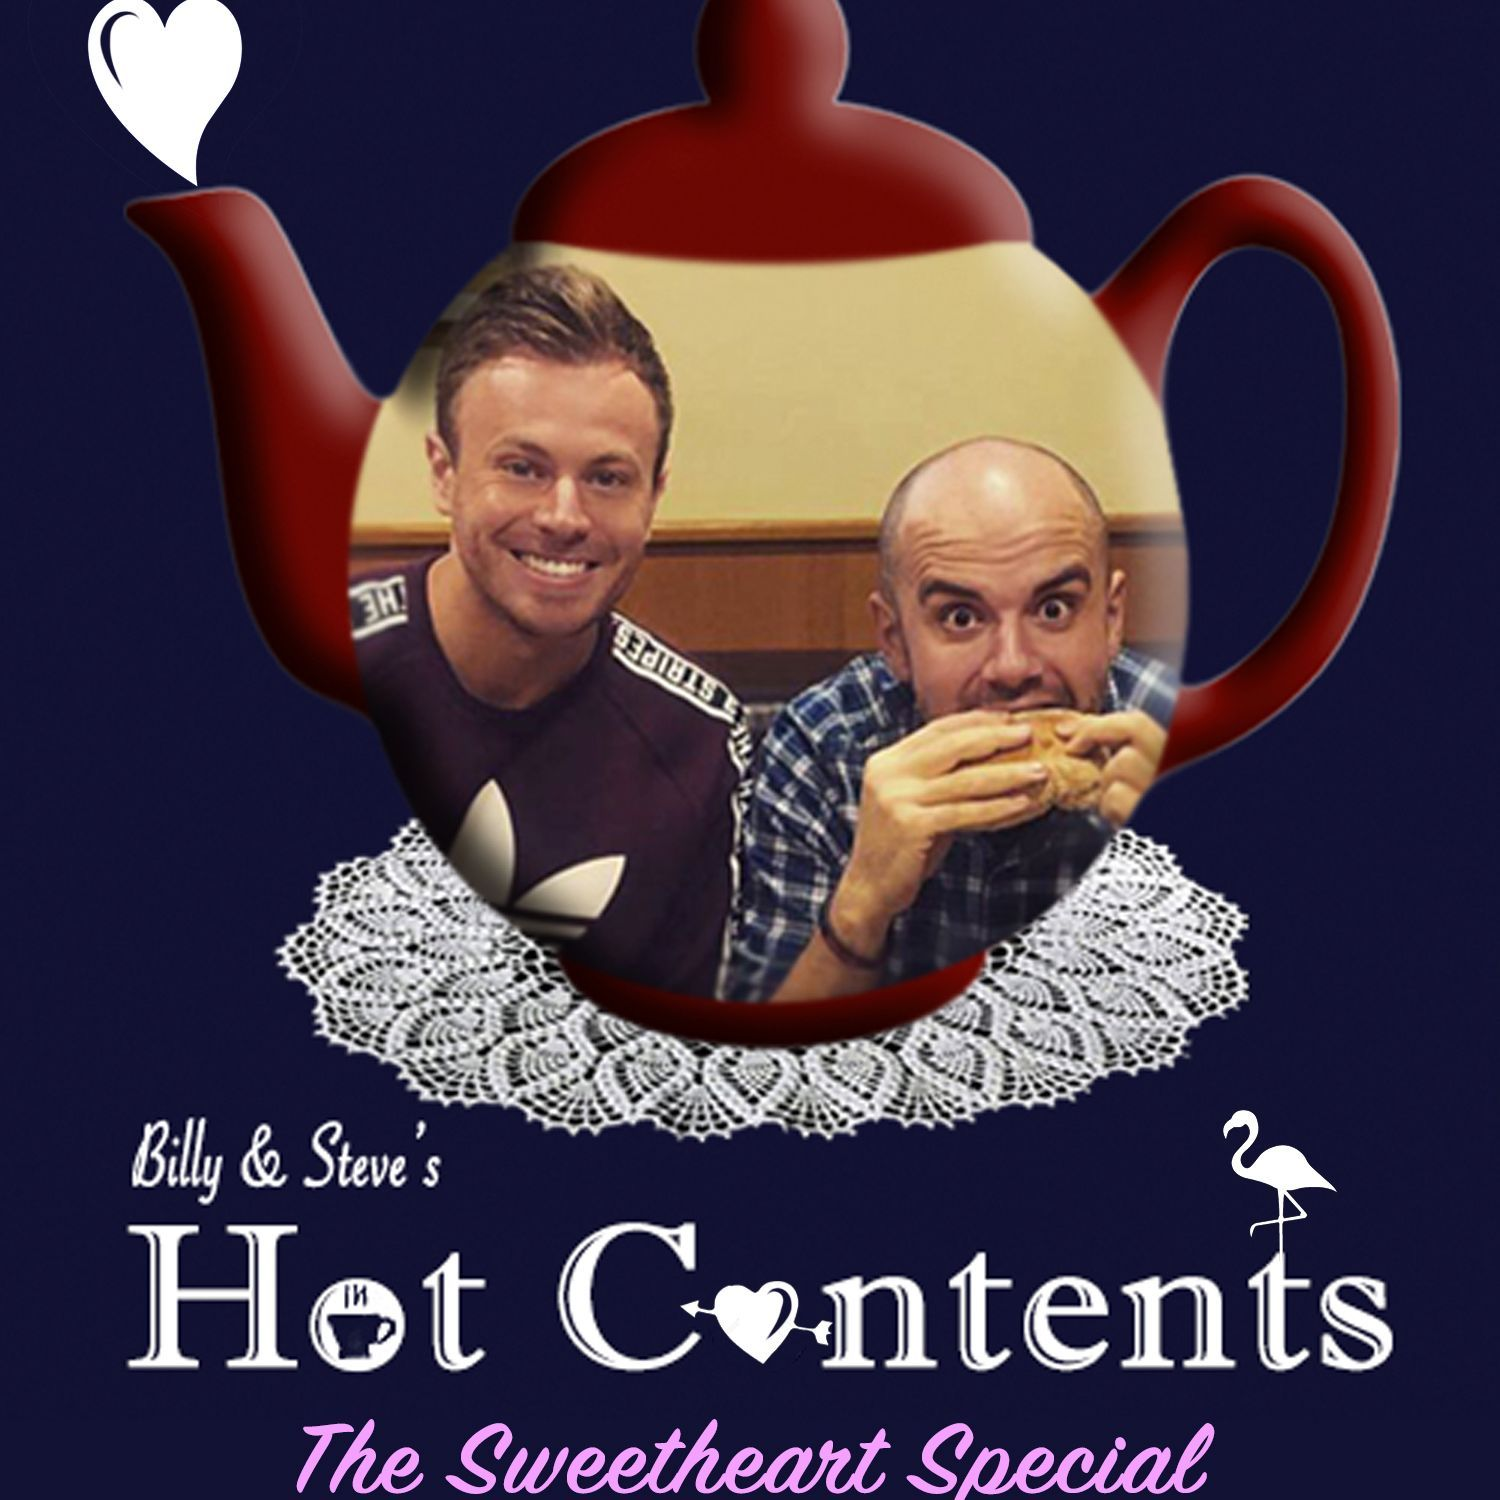 Hot Contents - Episode 5 (The Sweetheart Special)